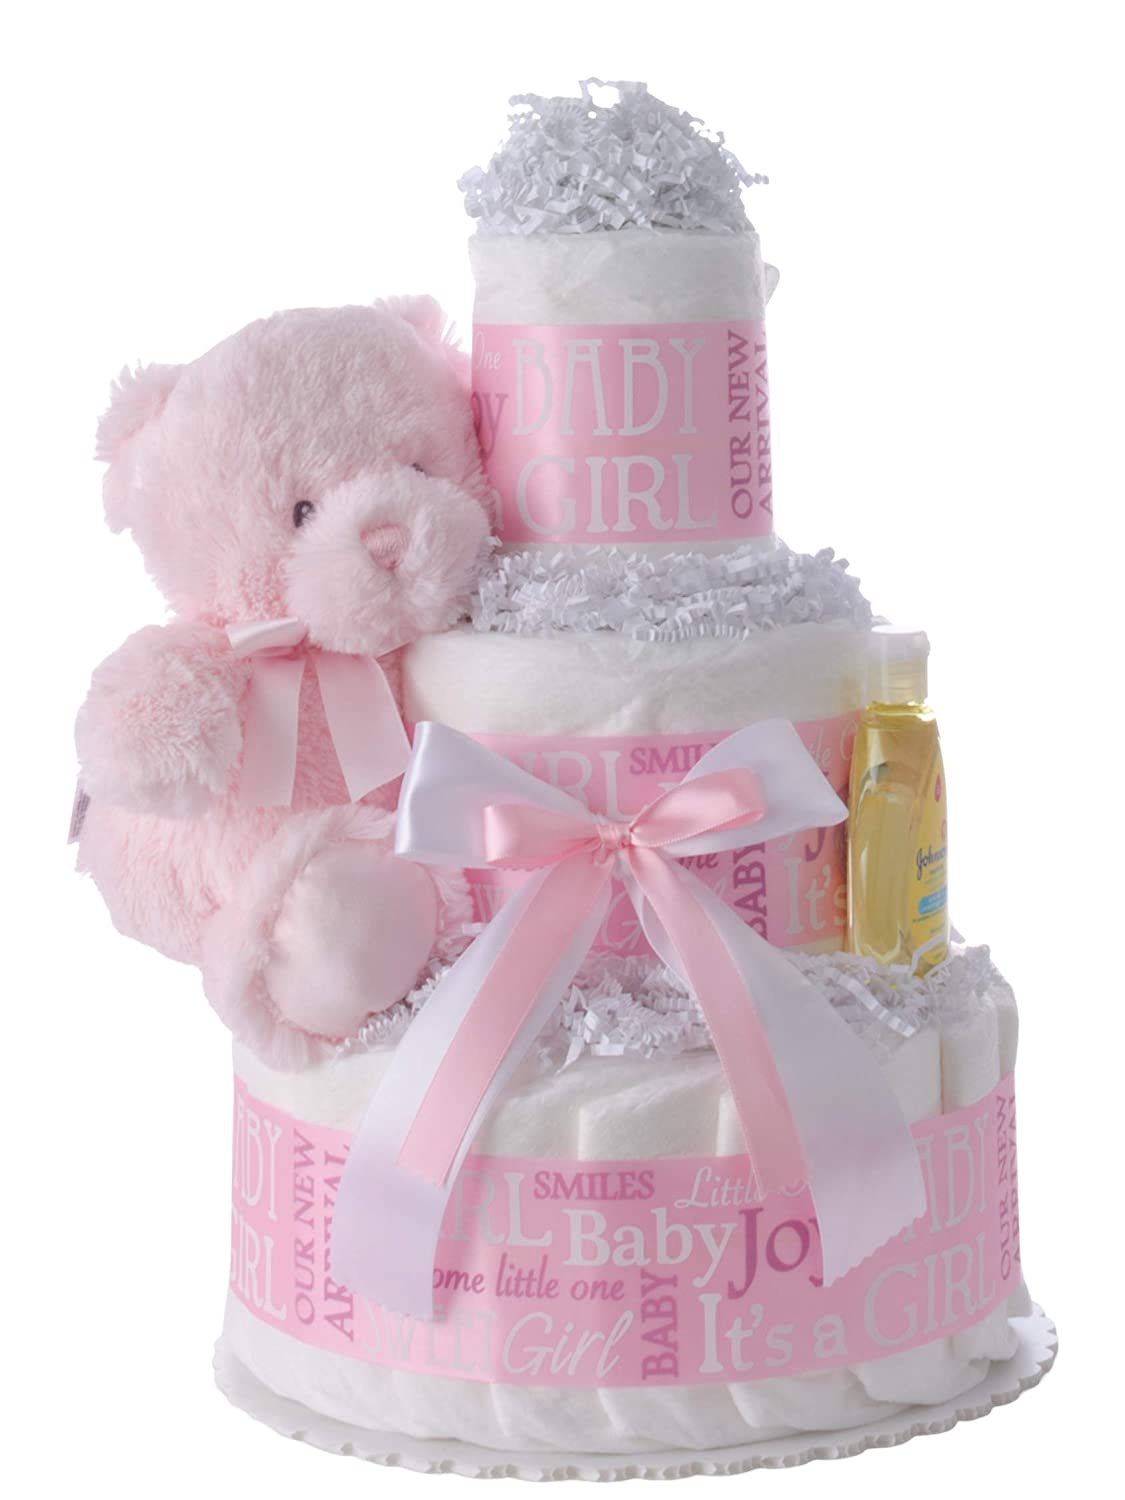 Baby Girl 3 Tier Diaper Cake - Beautiful Baby Gift for Girls with Usable Pamper Swaddler Diapers (Size 1) - Designed by Lil' Baby Cakes (10 inches Wide x 12 inches Tall)